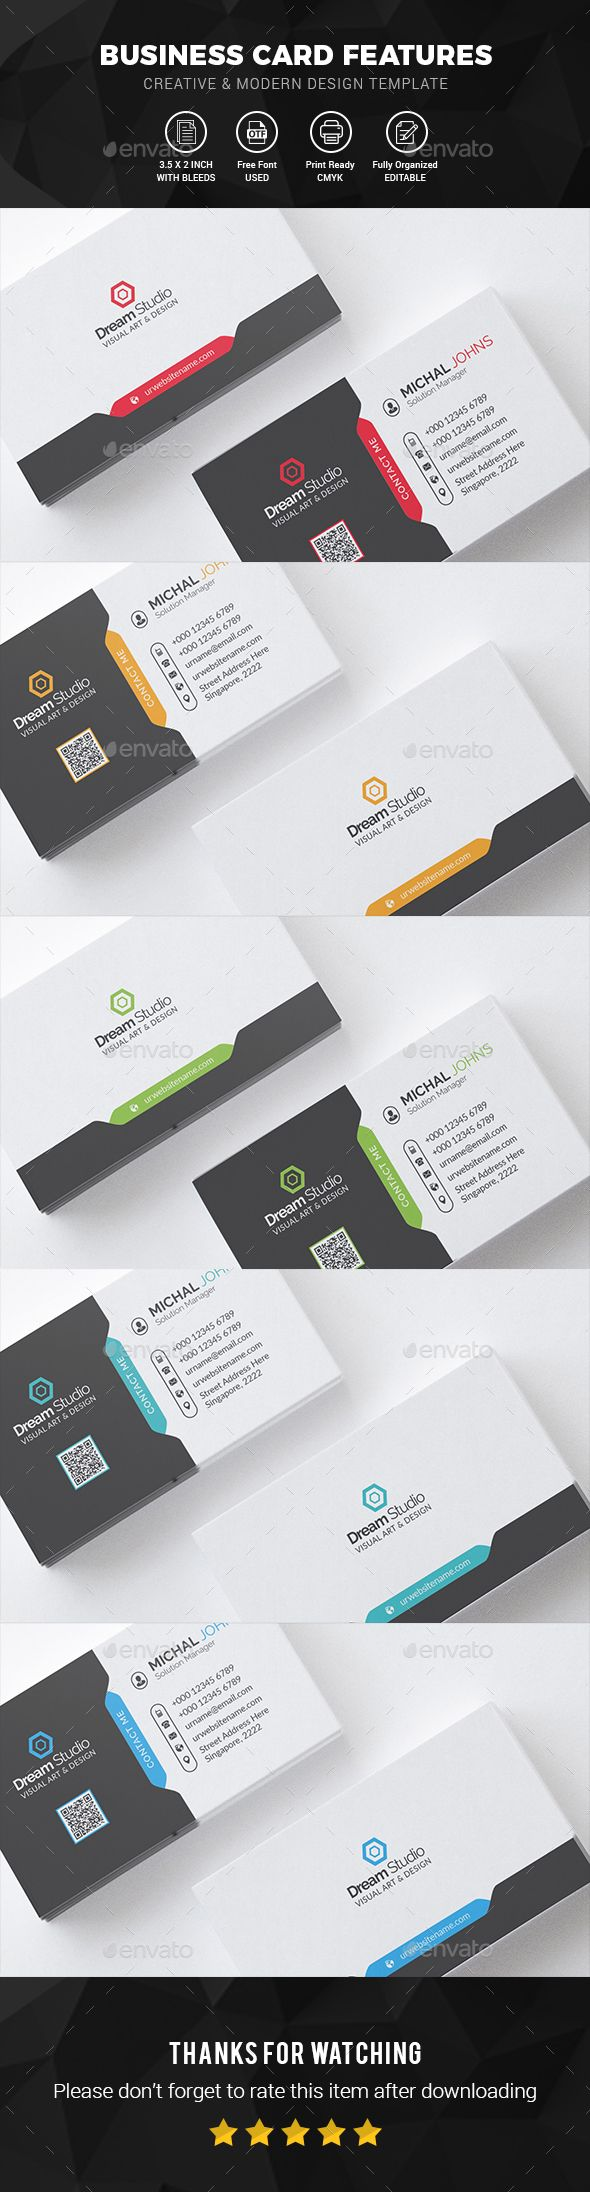 570 best business card inspiration images on pinterest business business cards reheart Choice Image